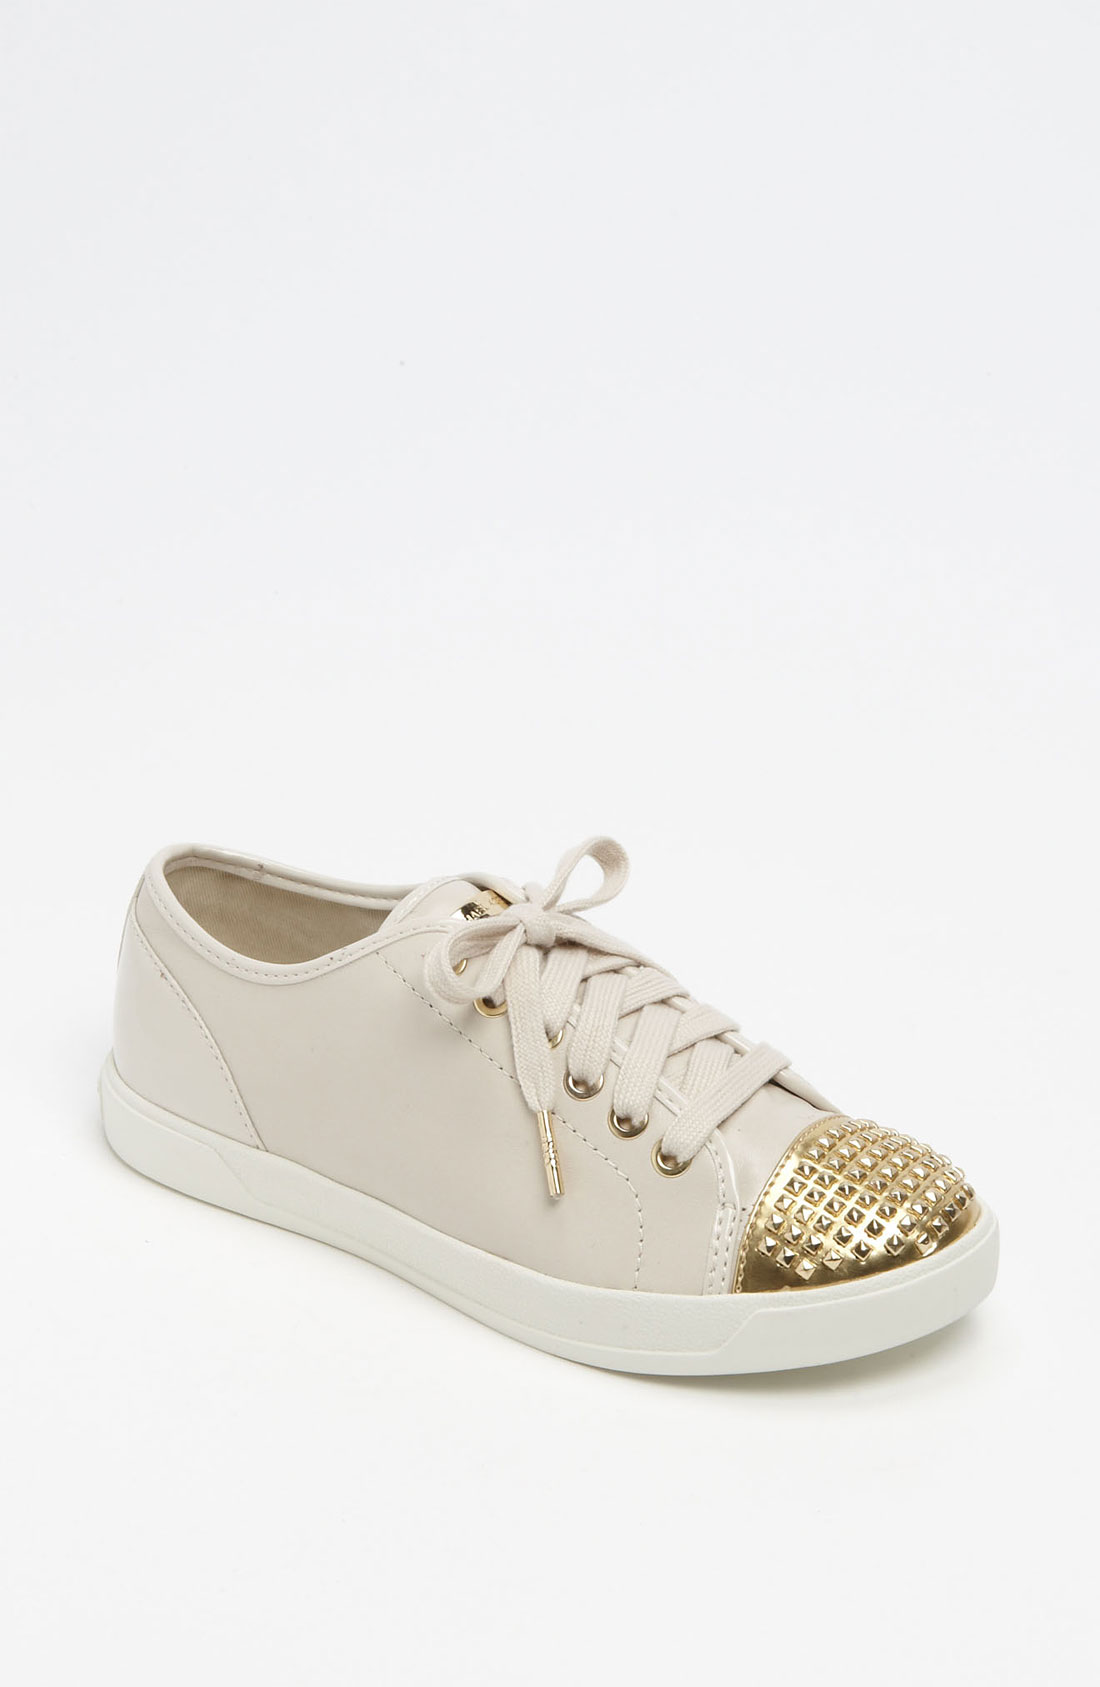 Michael Kors Gold Tennis Shoes